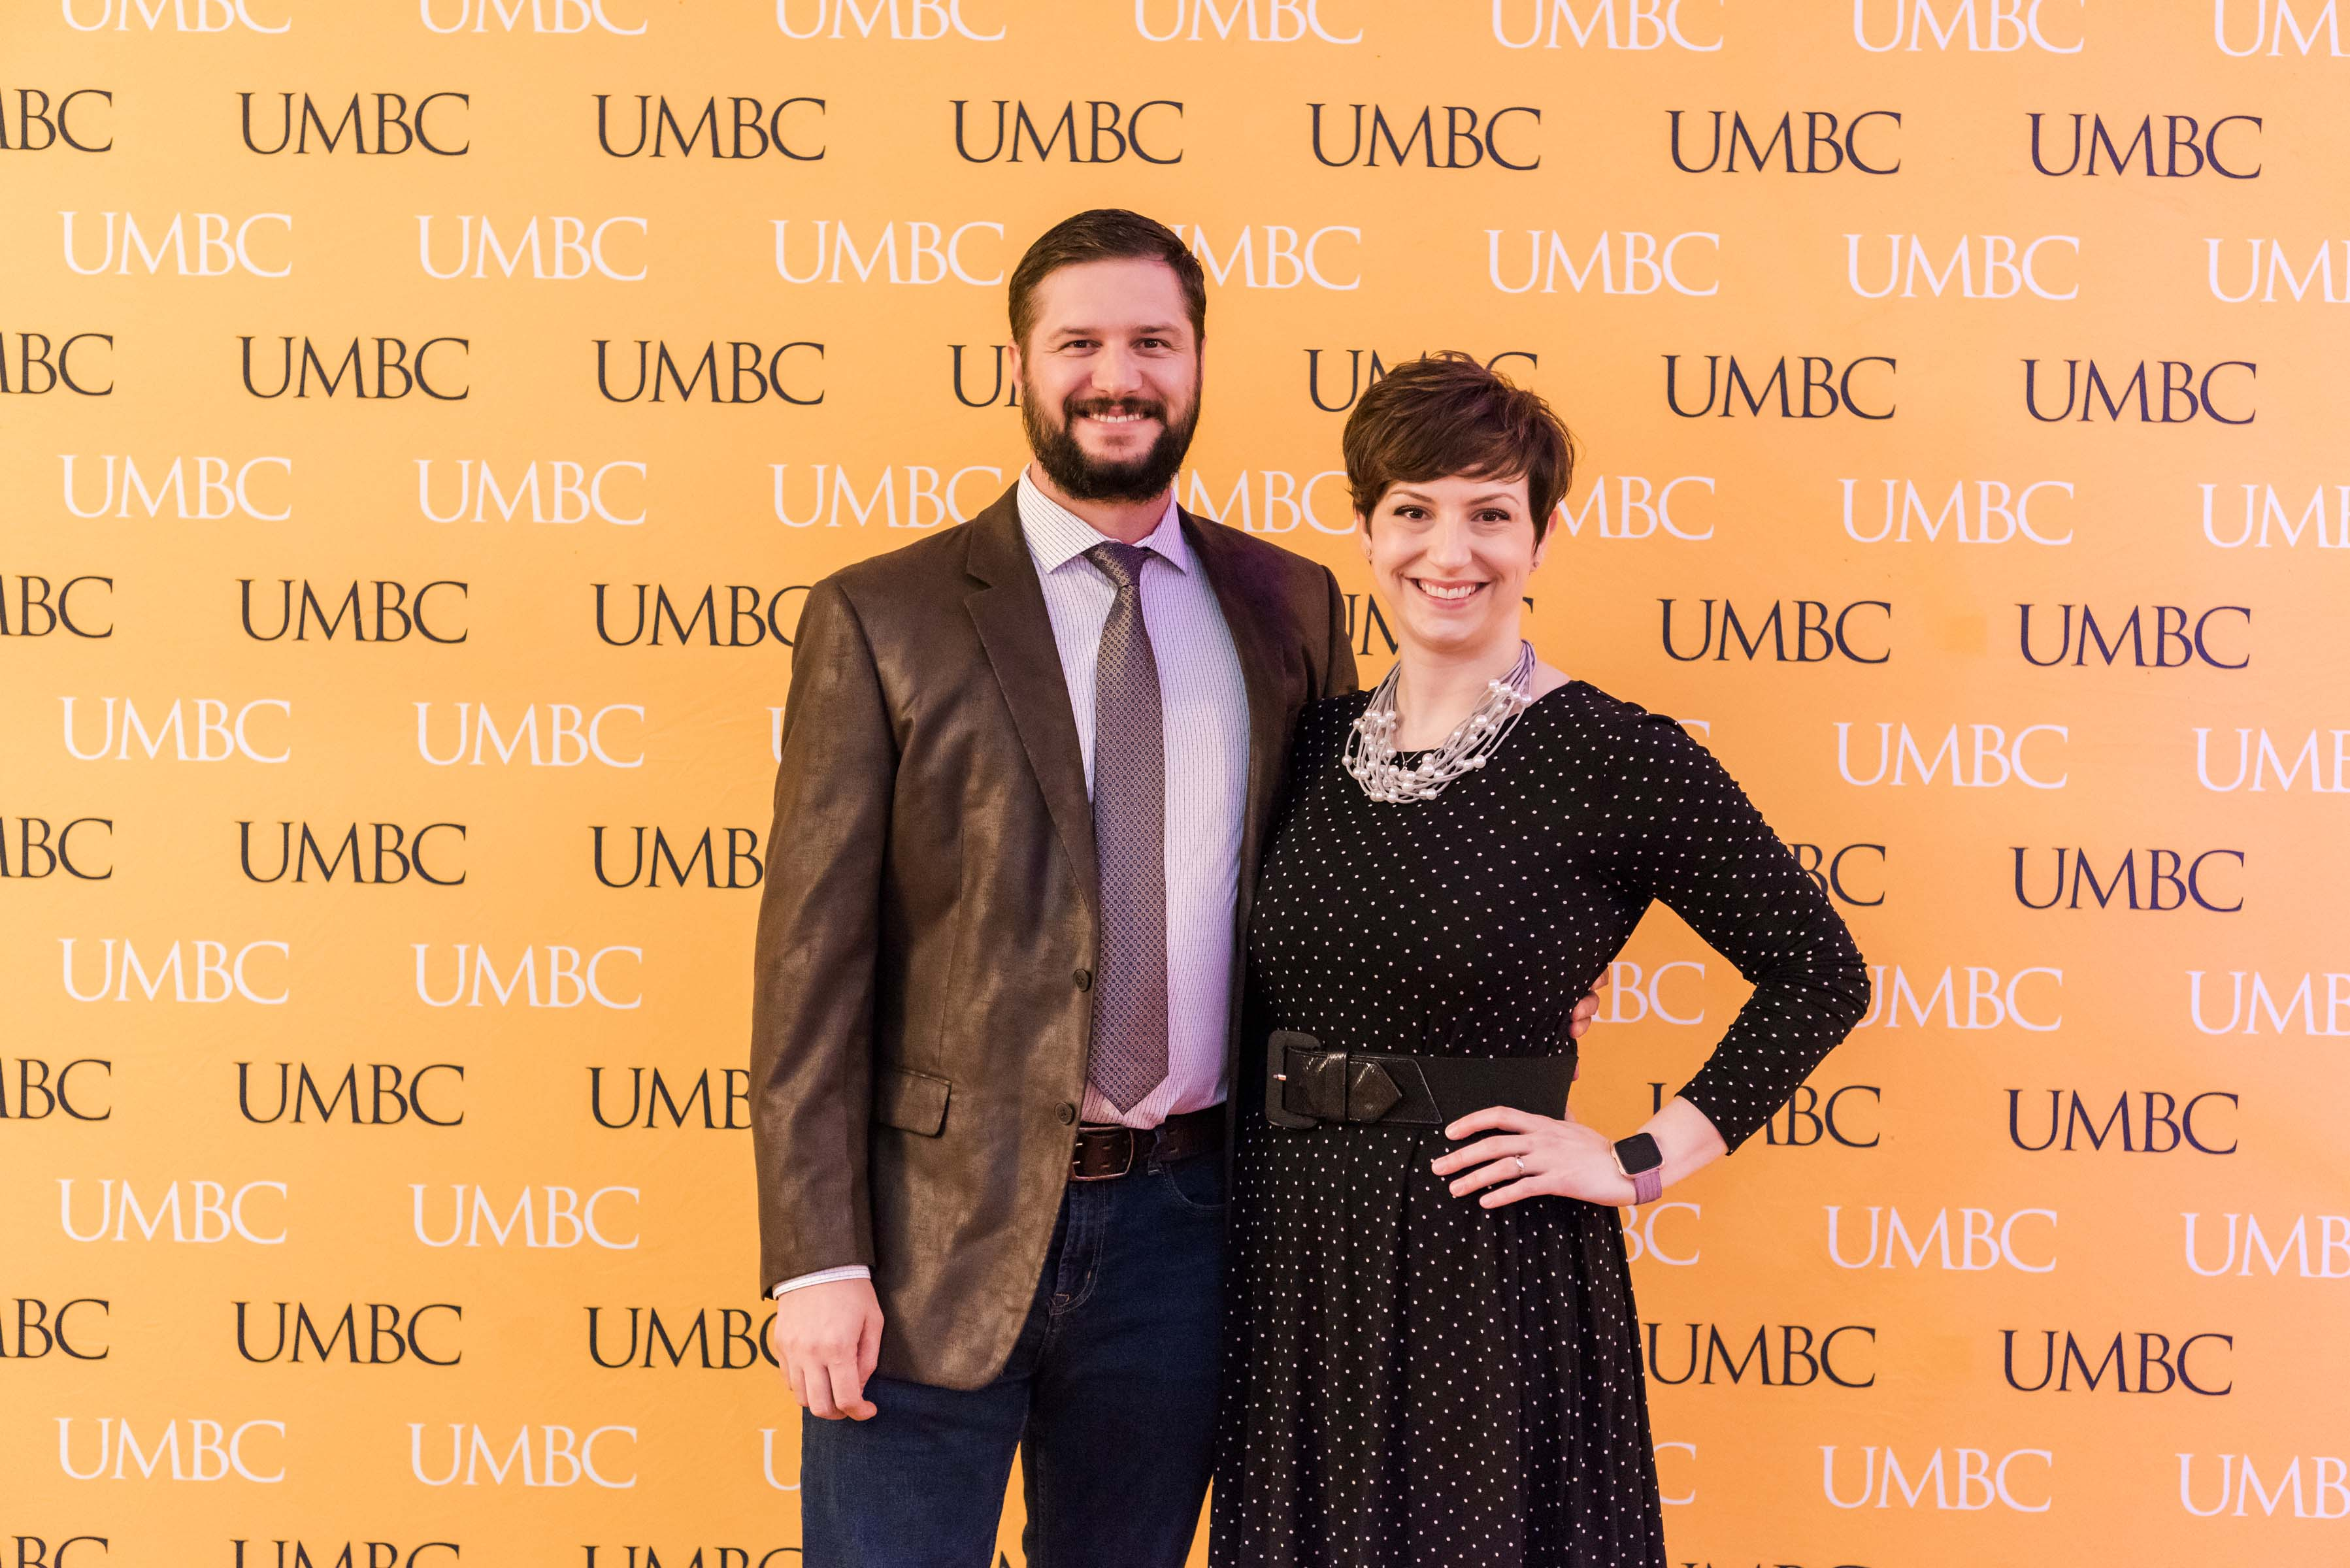 Couple pose at UMBC wall at wine tasting event